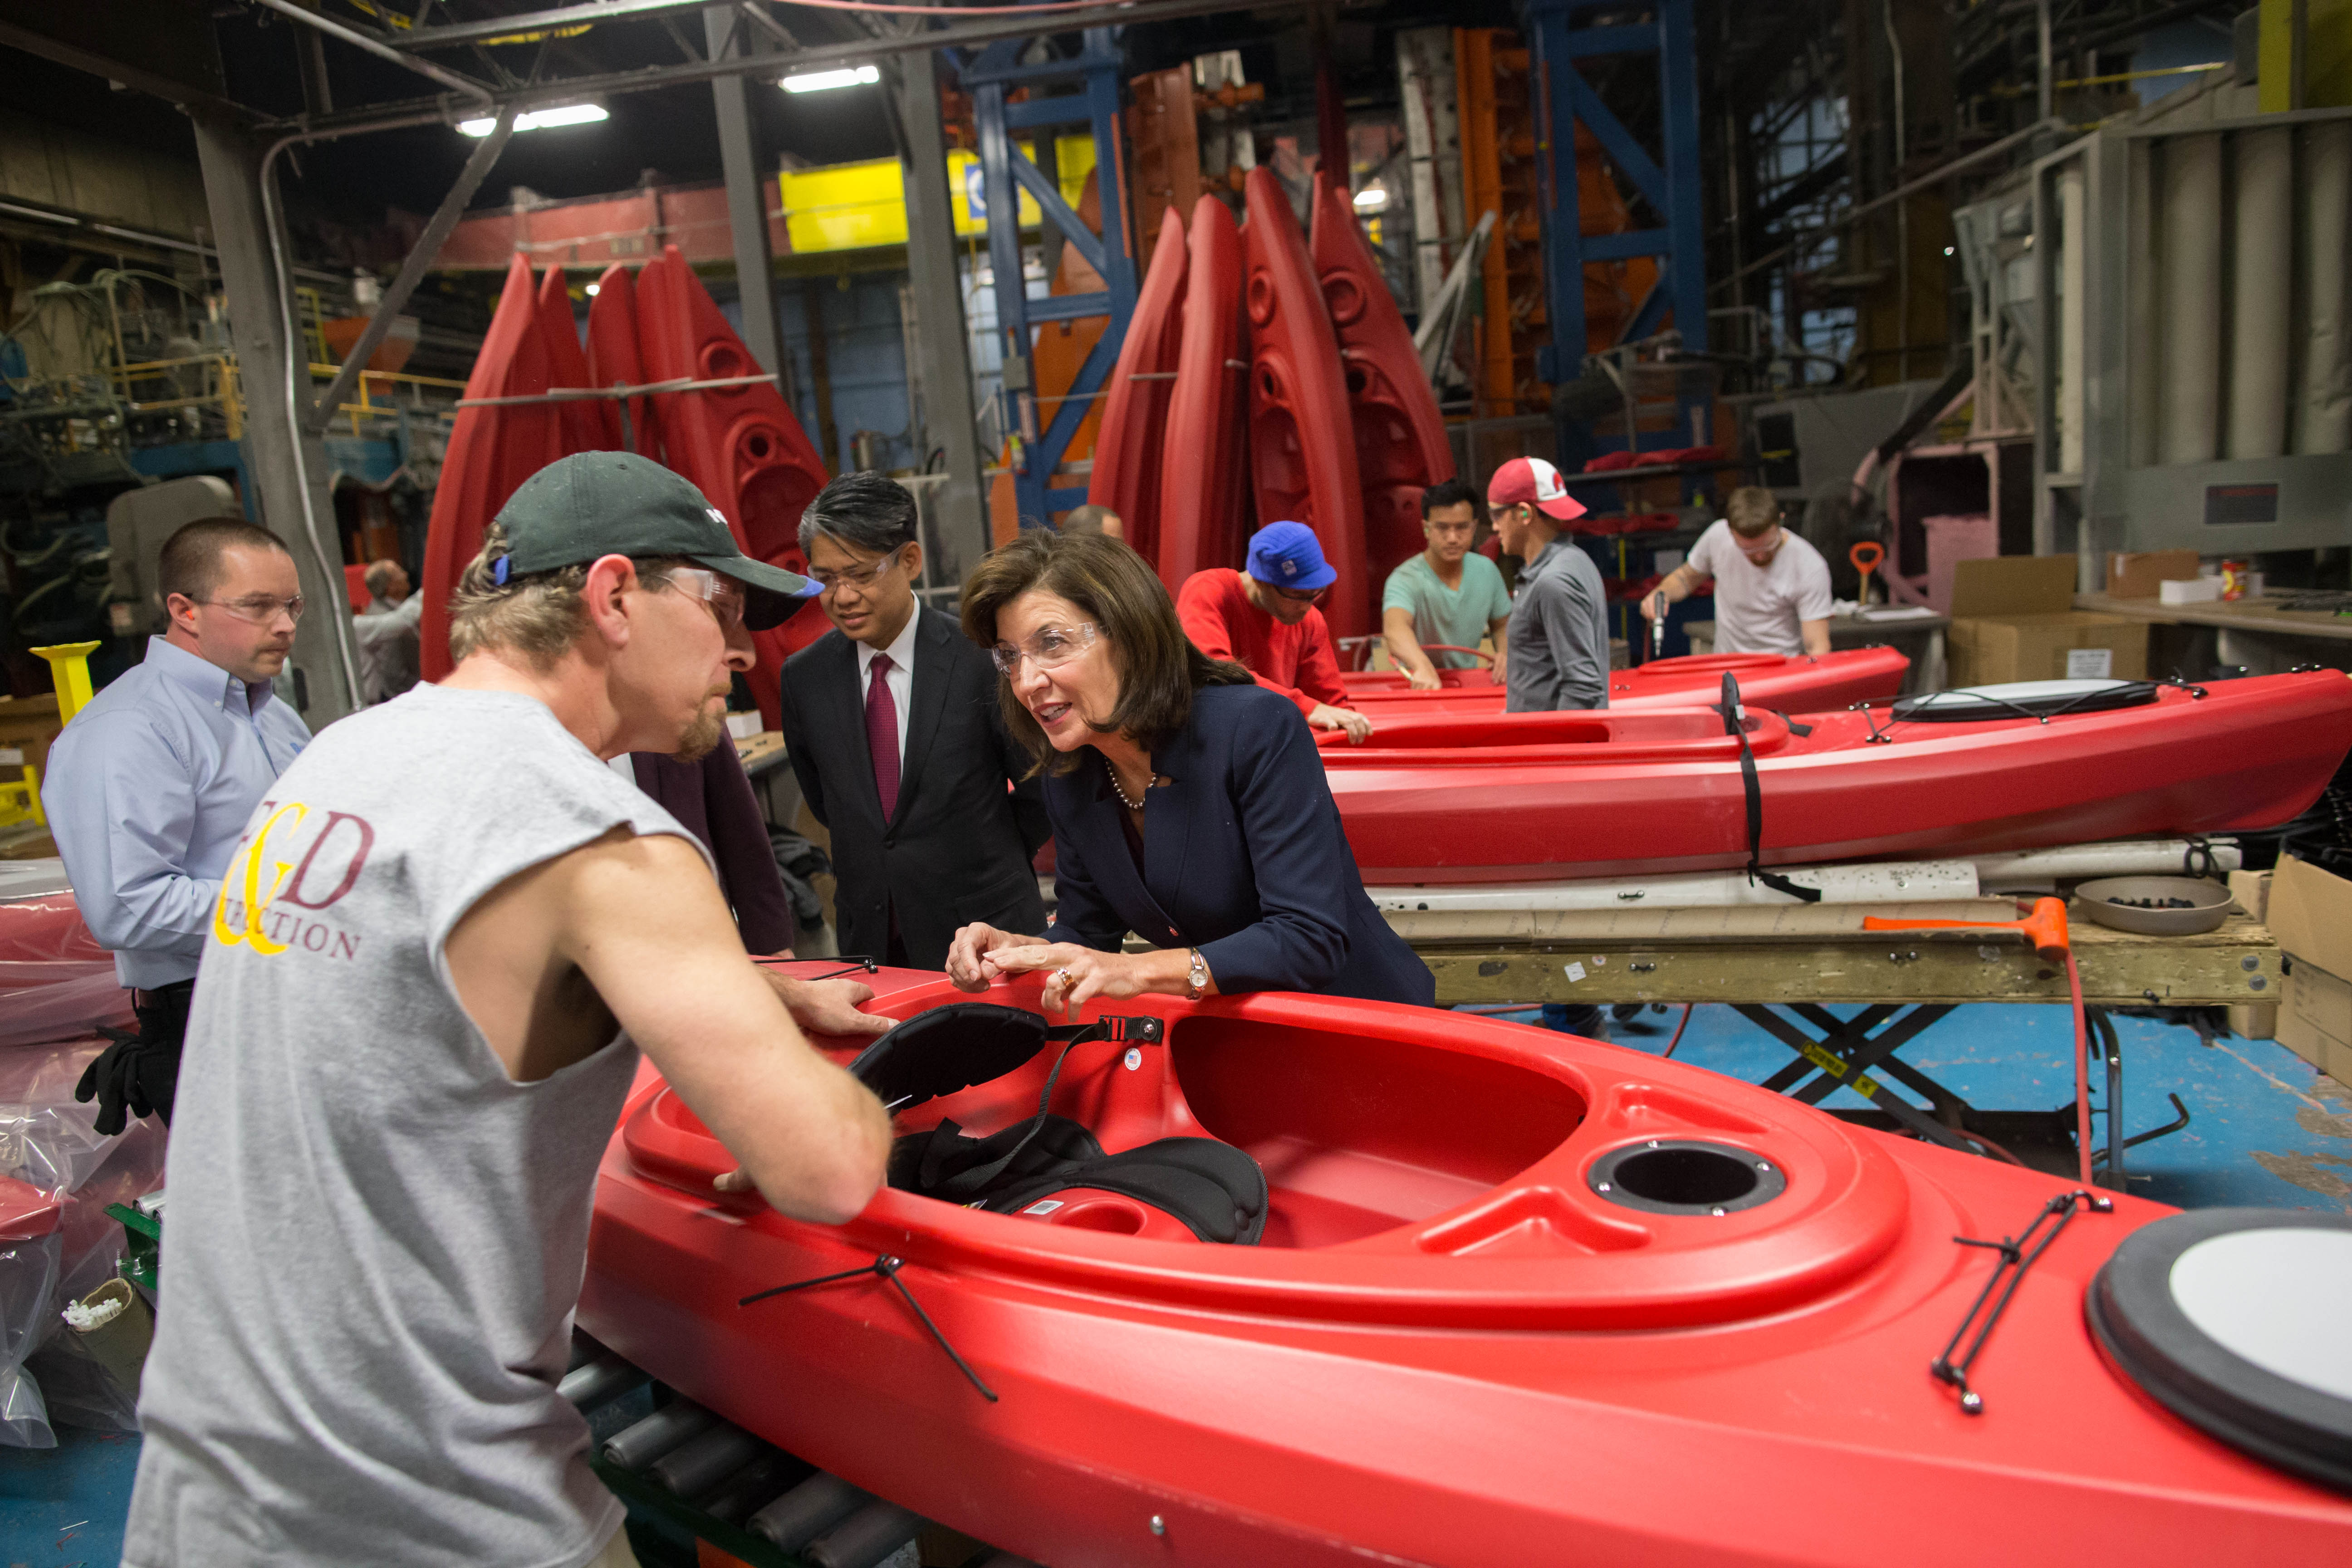 Confer Plastics' kayak output gets jolt from low-cost power – The